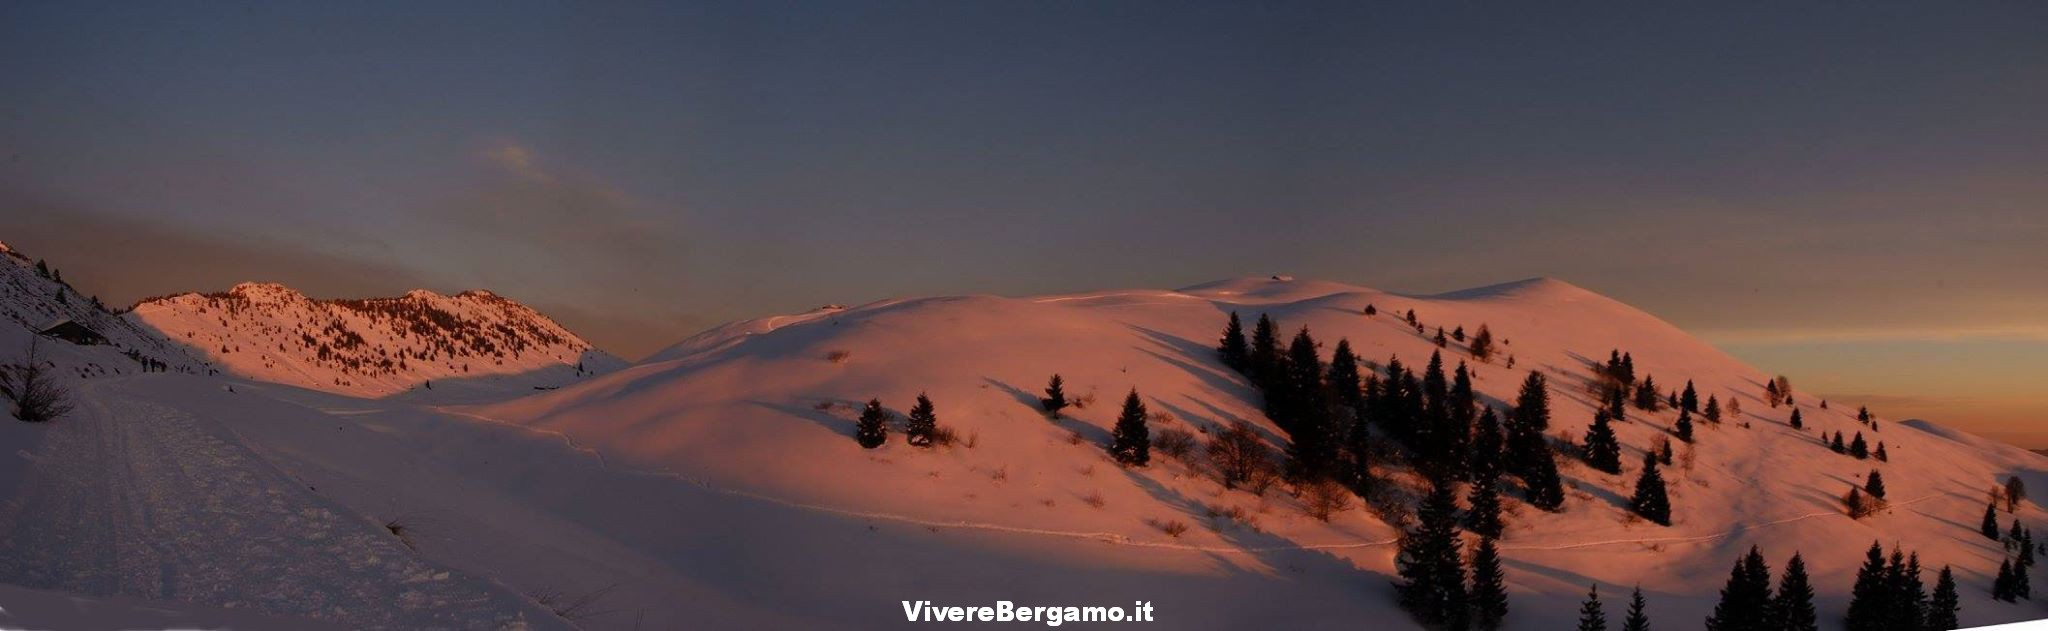 Panoramica Pizzo formico con neve